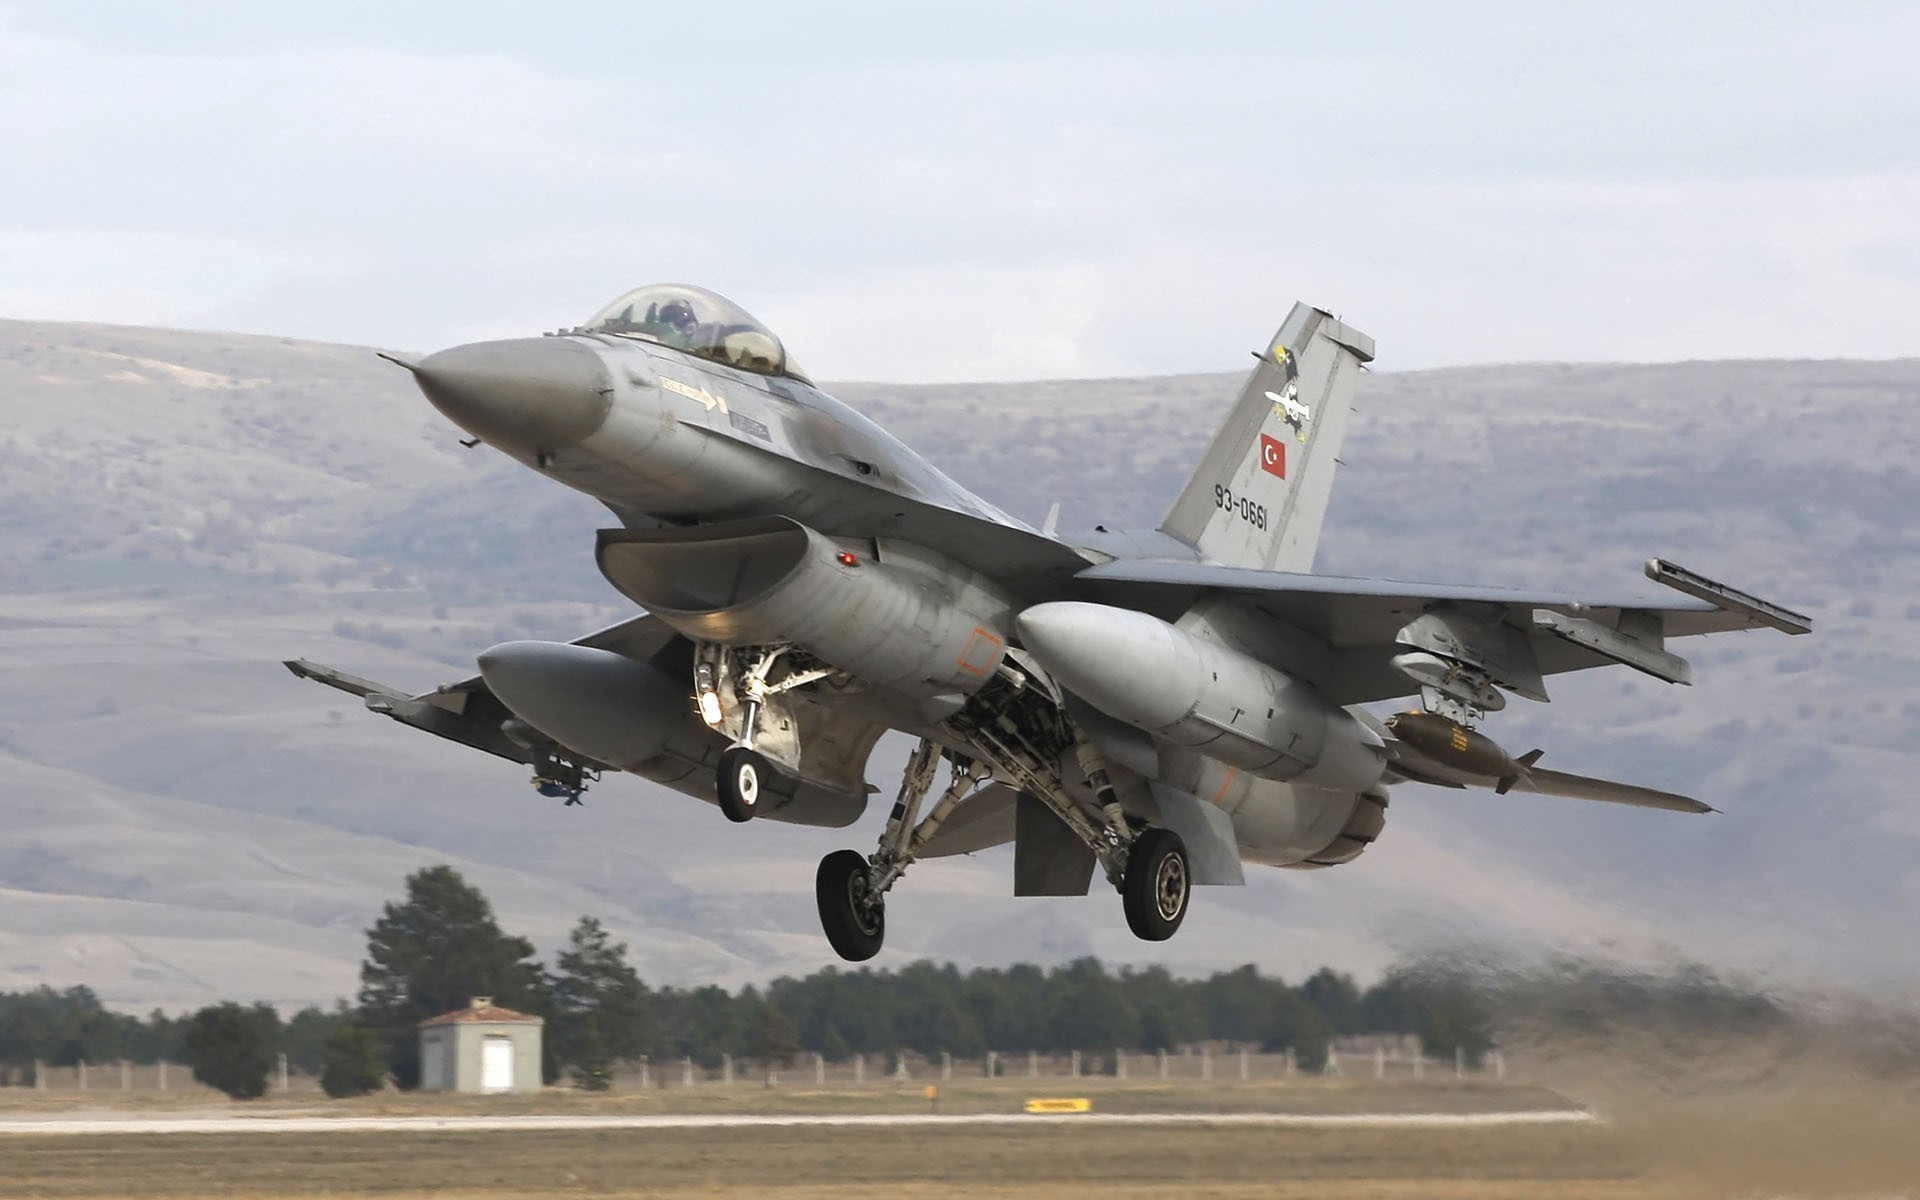 An F-16 Fighting Falcon taking off from a Turkish runway  HD